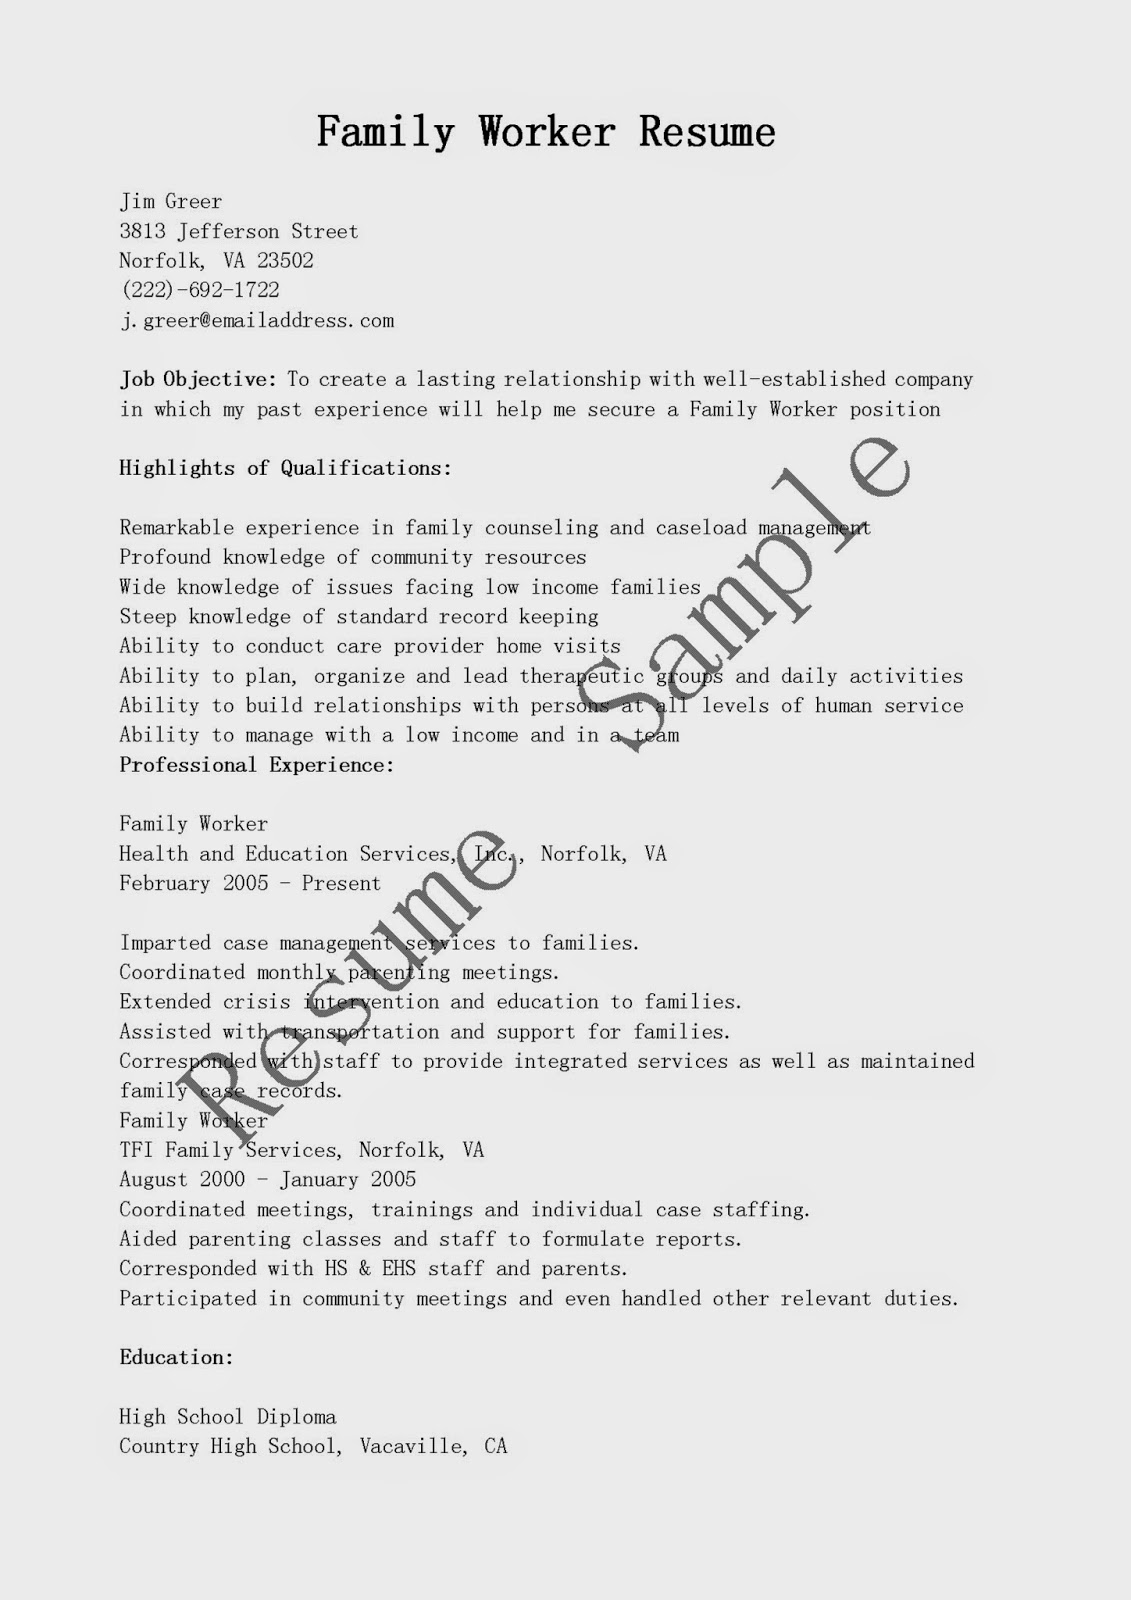 resume samples  family worker resume sample